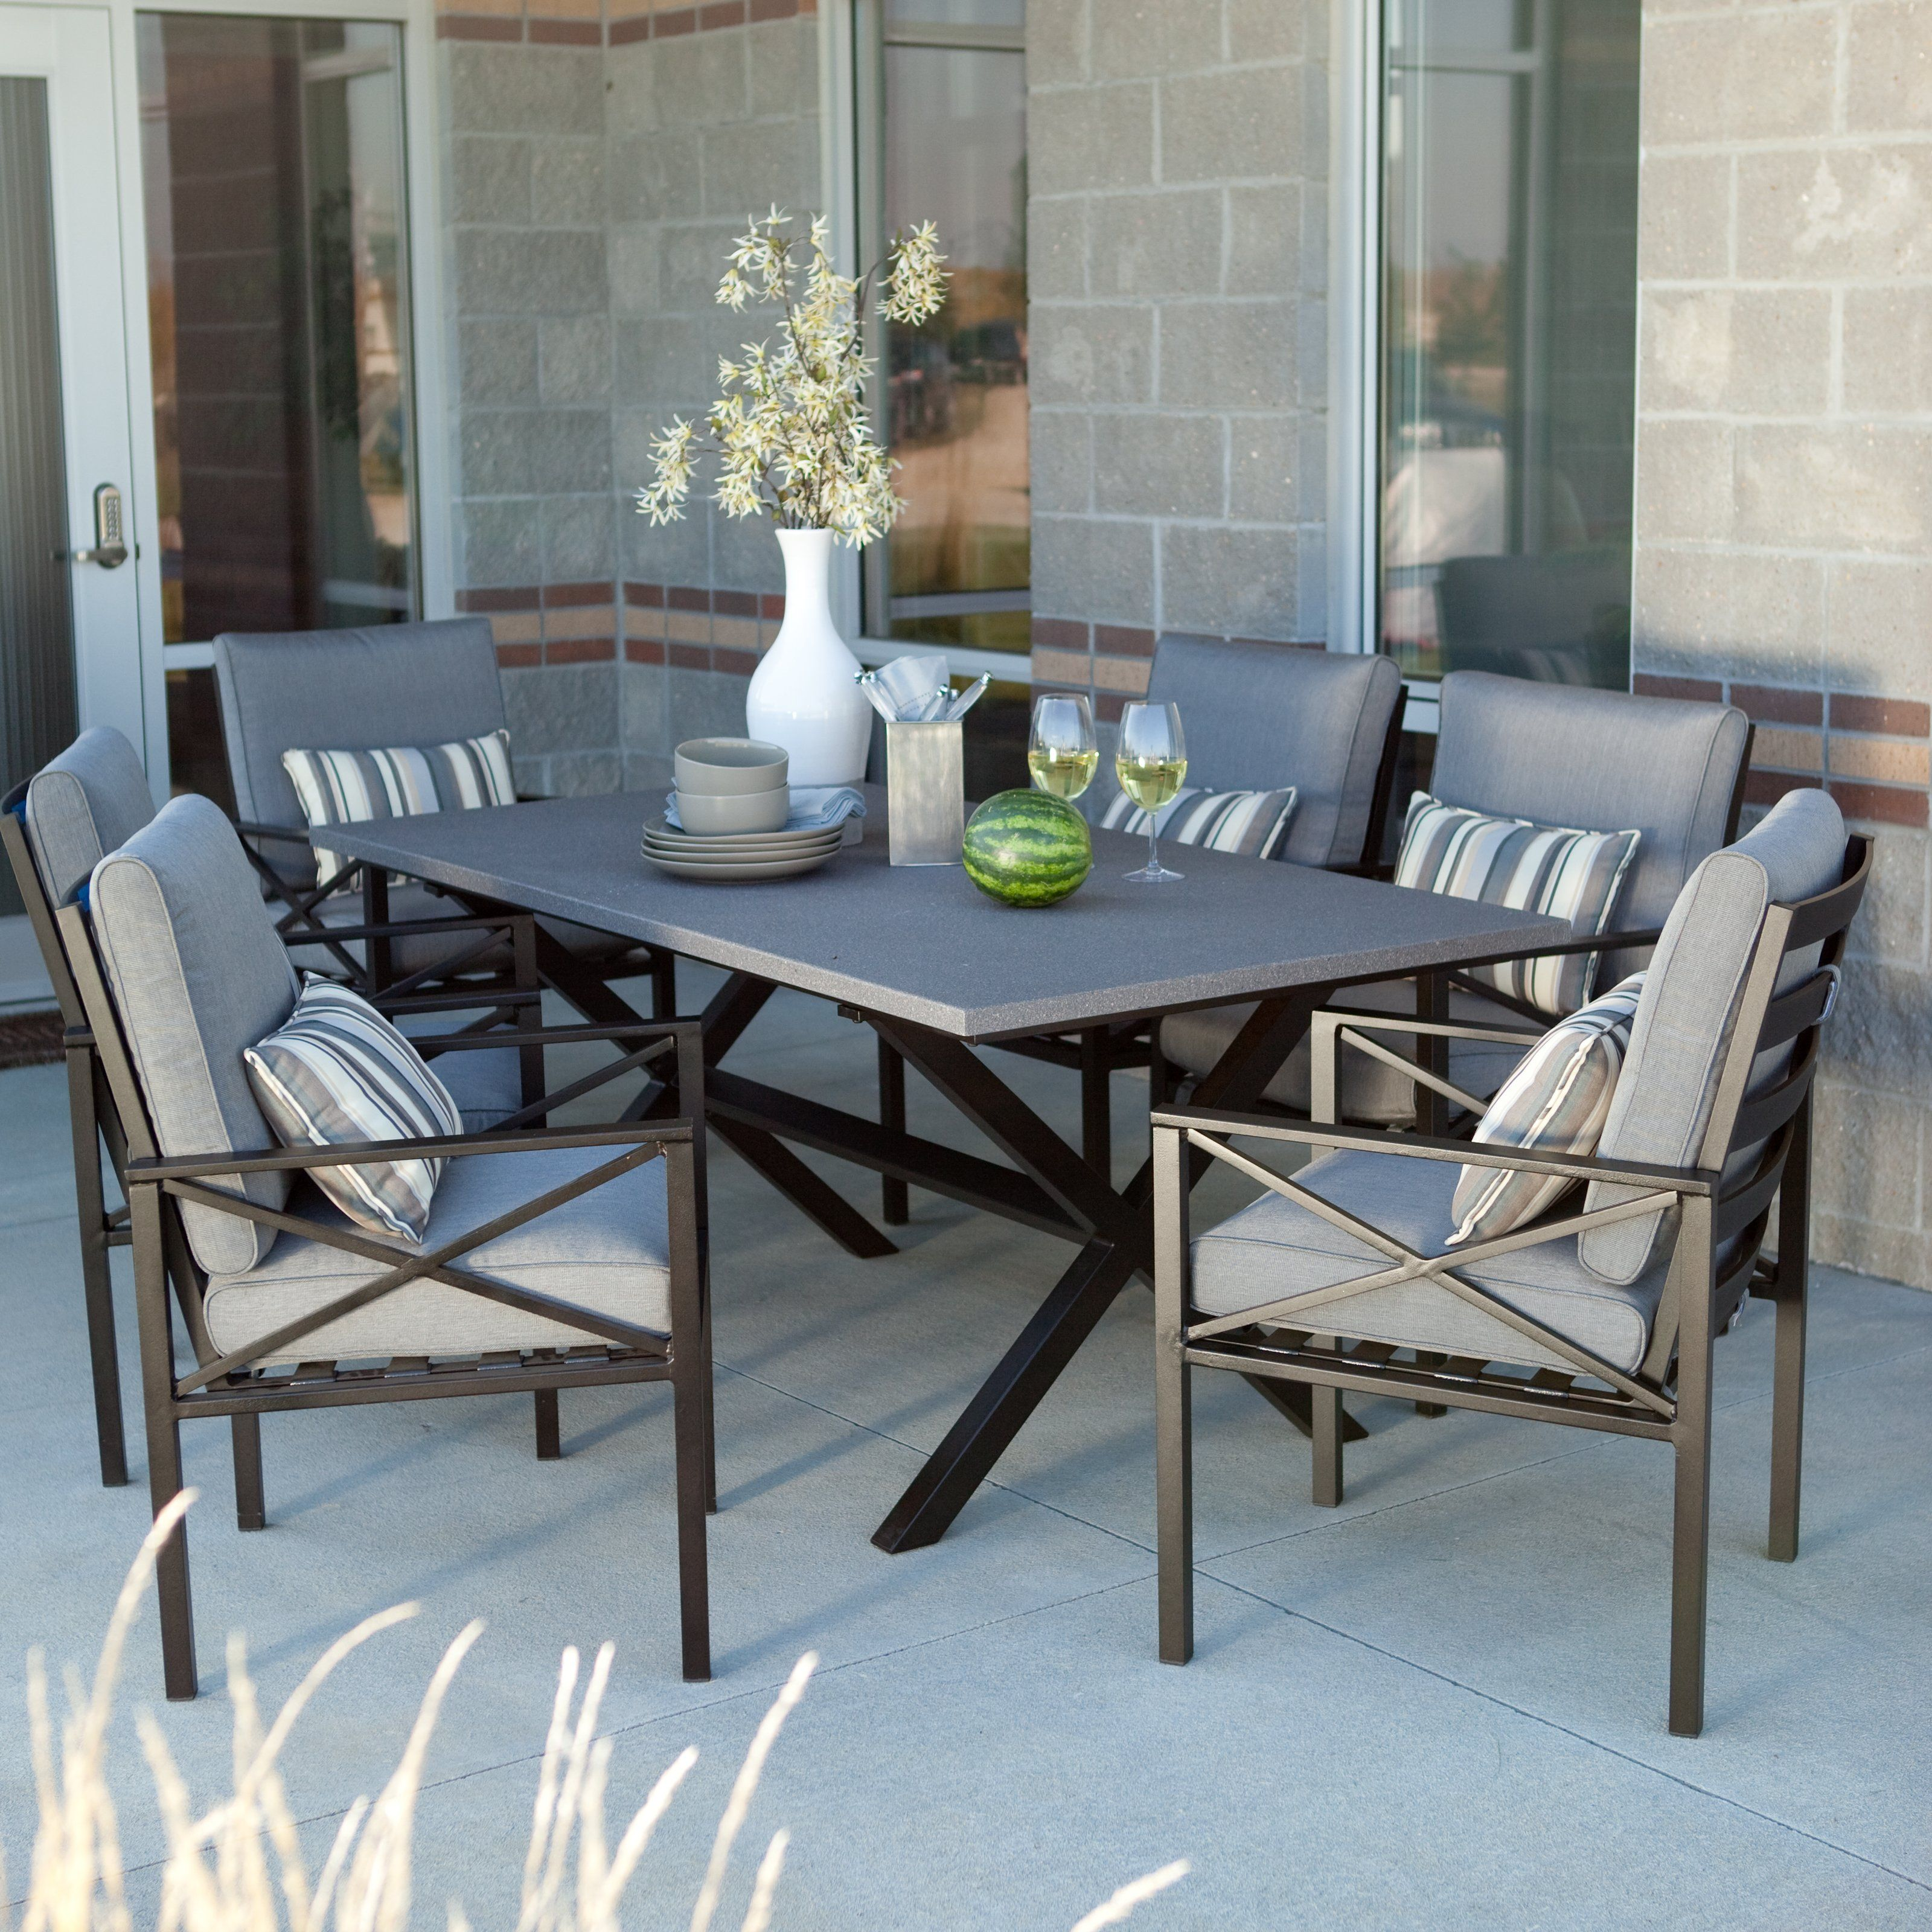 Have to have it. Madison Outdoor Dining Set - Seats 6 $1445.01